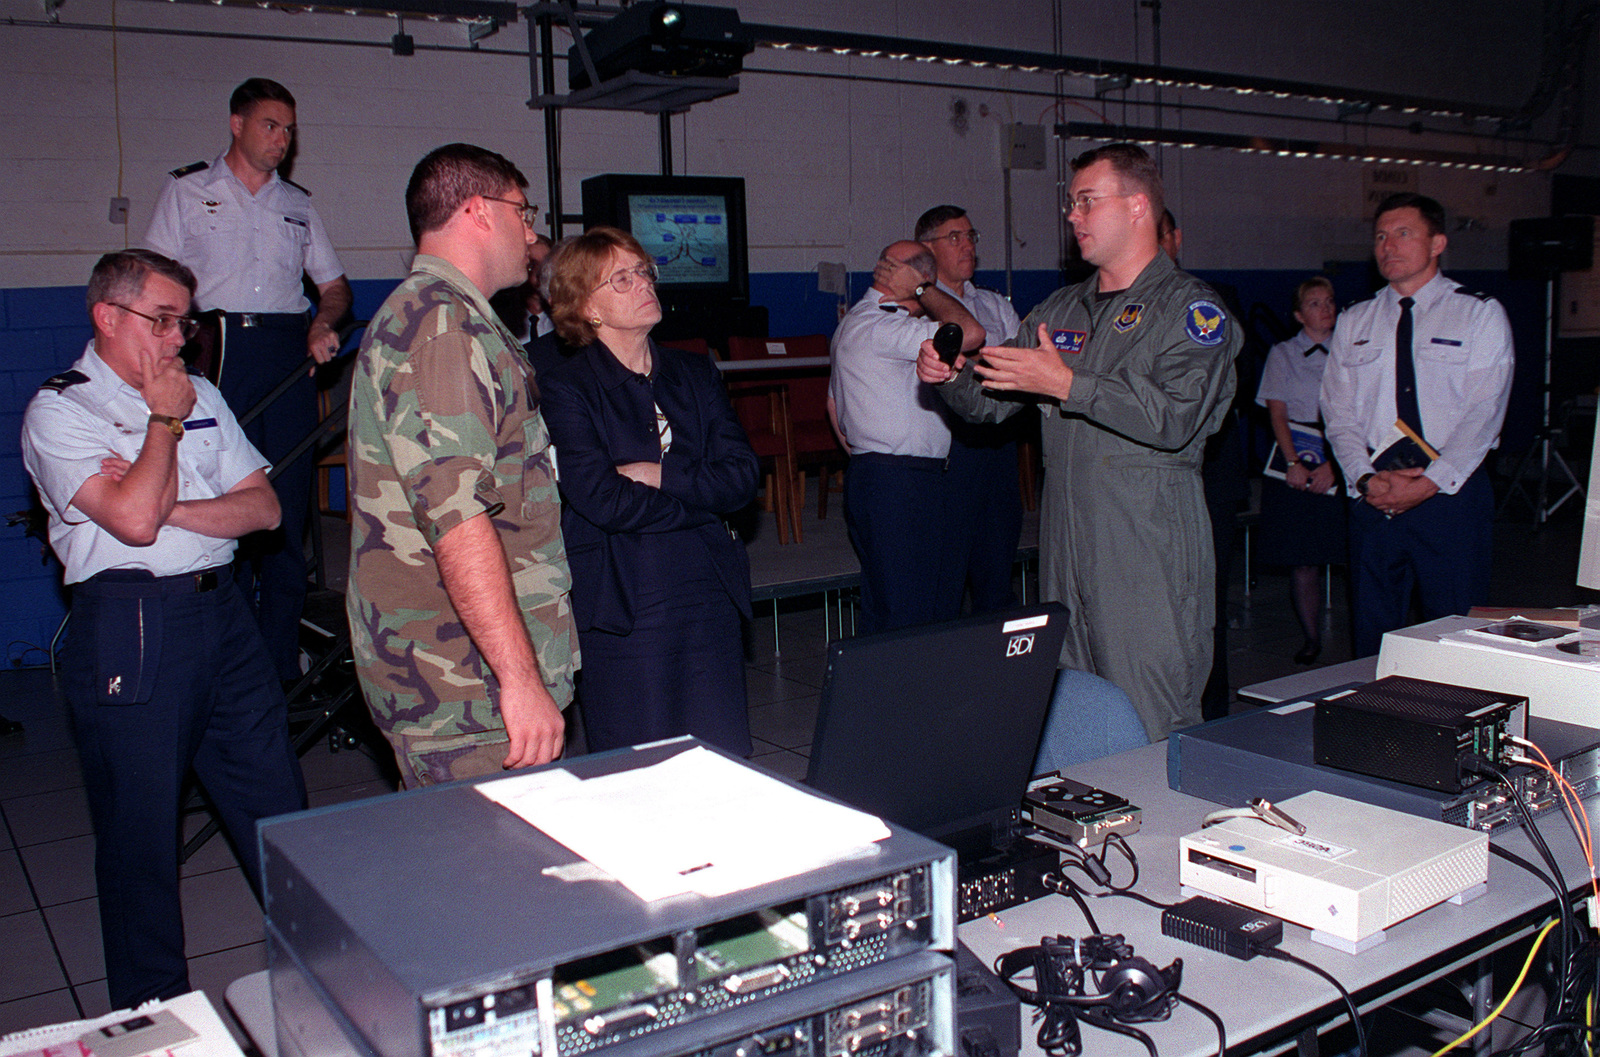 The Honorable Dr. Shiela Widnall, Secretary of the Air Force and Massachusetts native, visits the base and tours the Combined Unified Battlespace Environment (CUBE) located in the Electronic Systems Center (ESC). Project officer CPT Brock explains to Madam Secretary, the mission of the CUBE